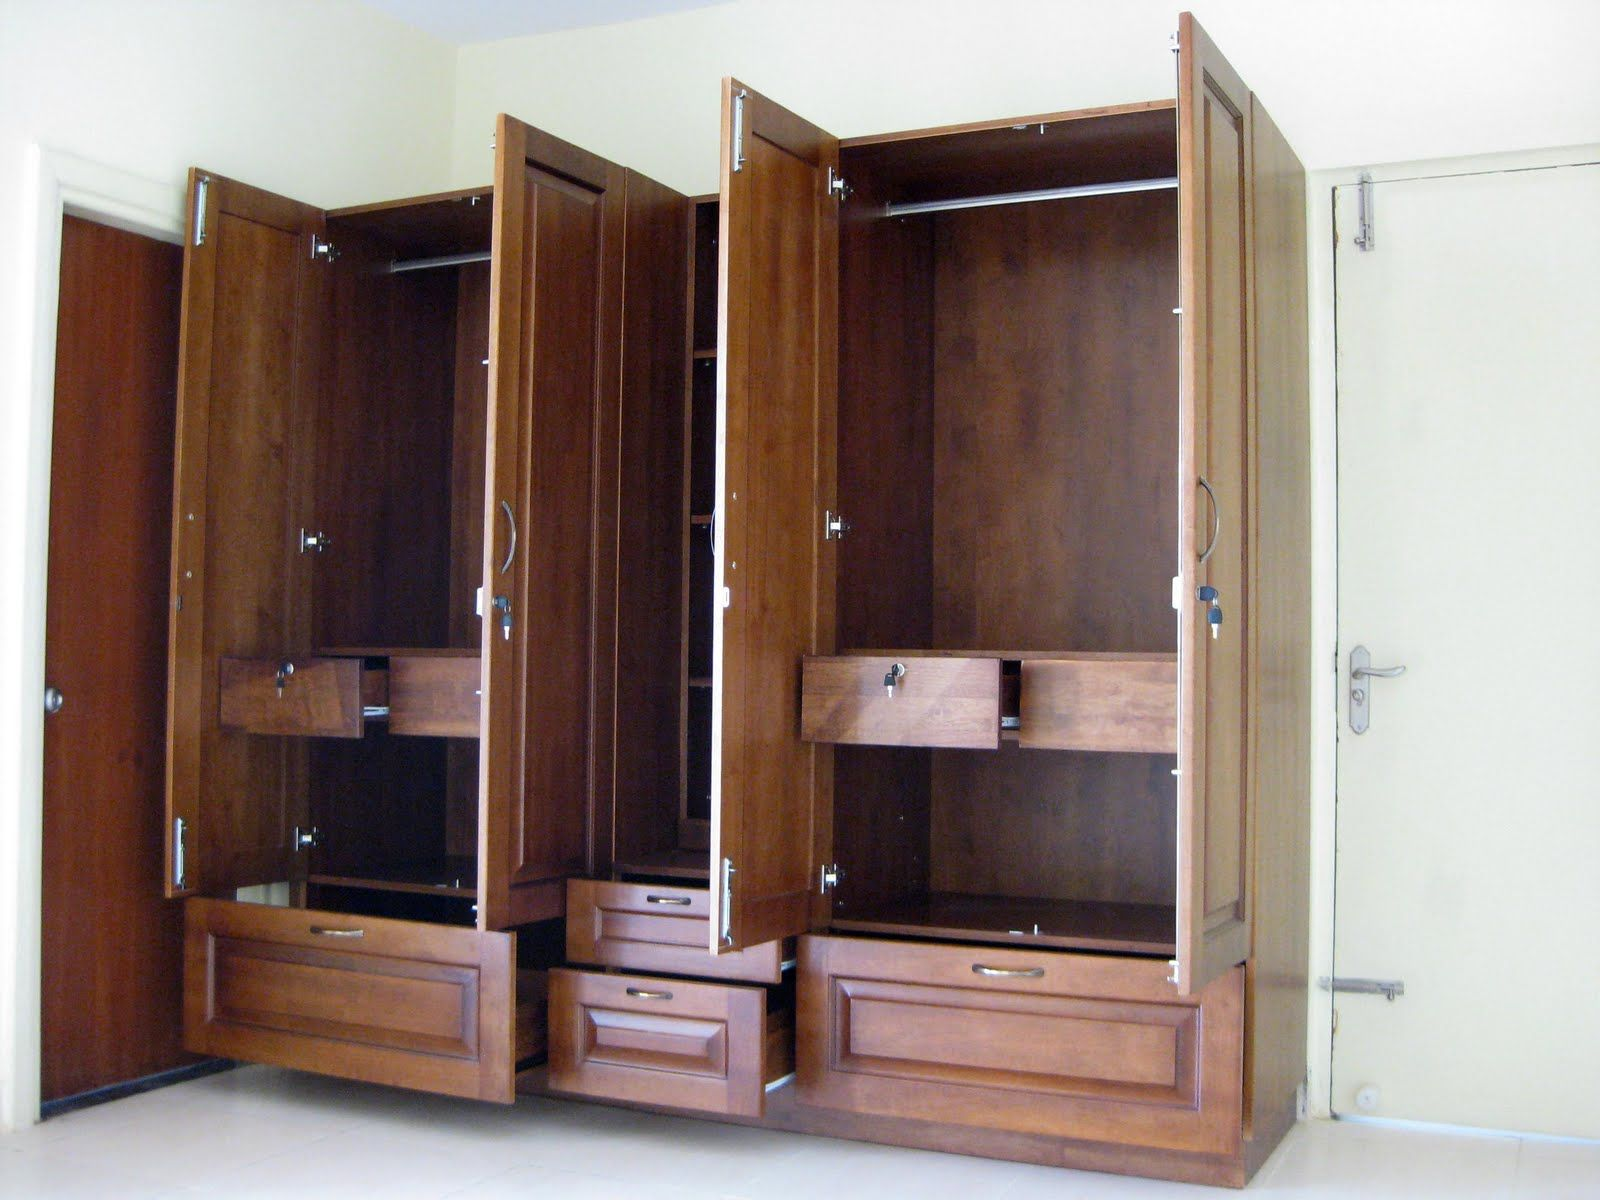 spacious wardrobes for high end wardrobesbangalore httpwwwmodular wardrobe furniturebedroom wardrobewardrobe designfurniture - Designs For Wardrobes In Bedrooms